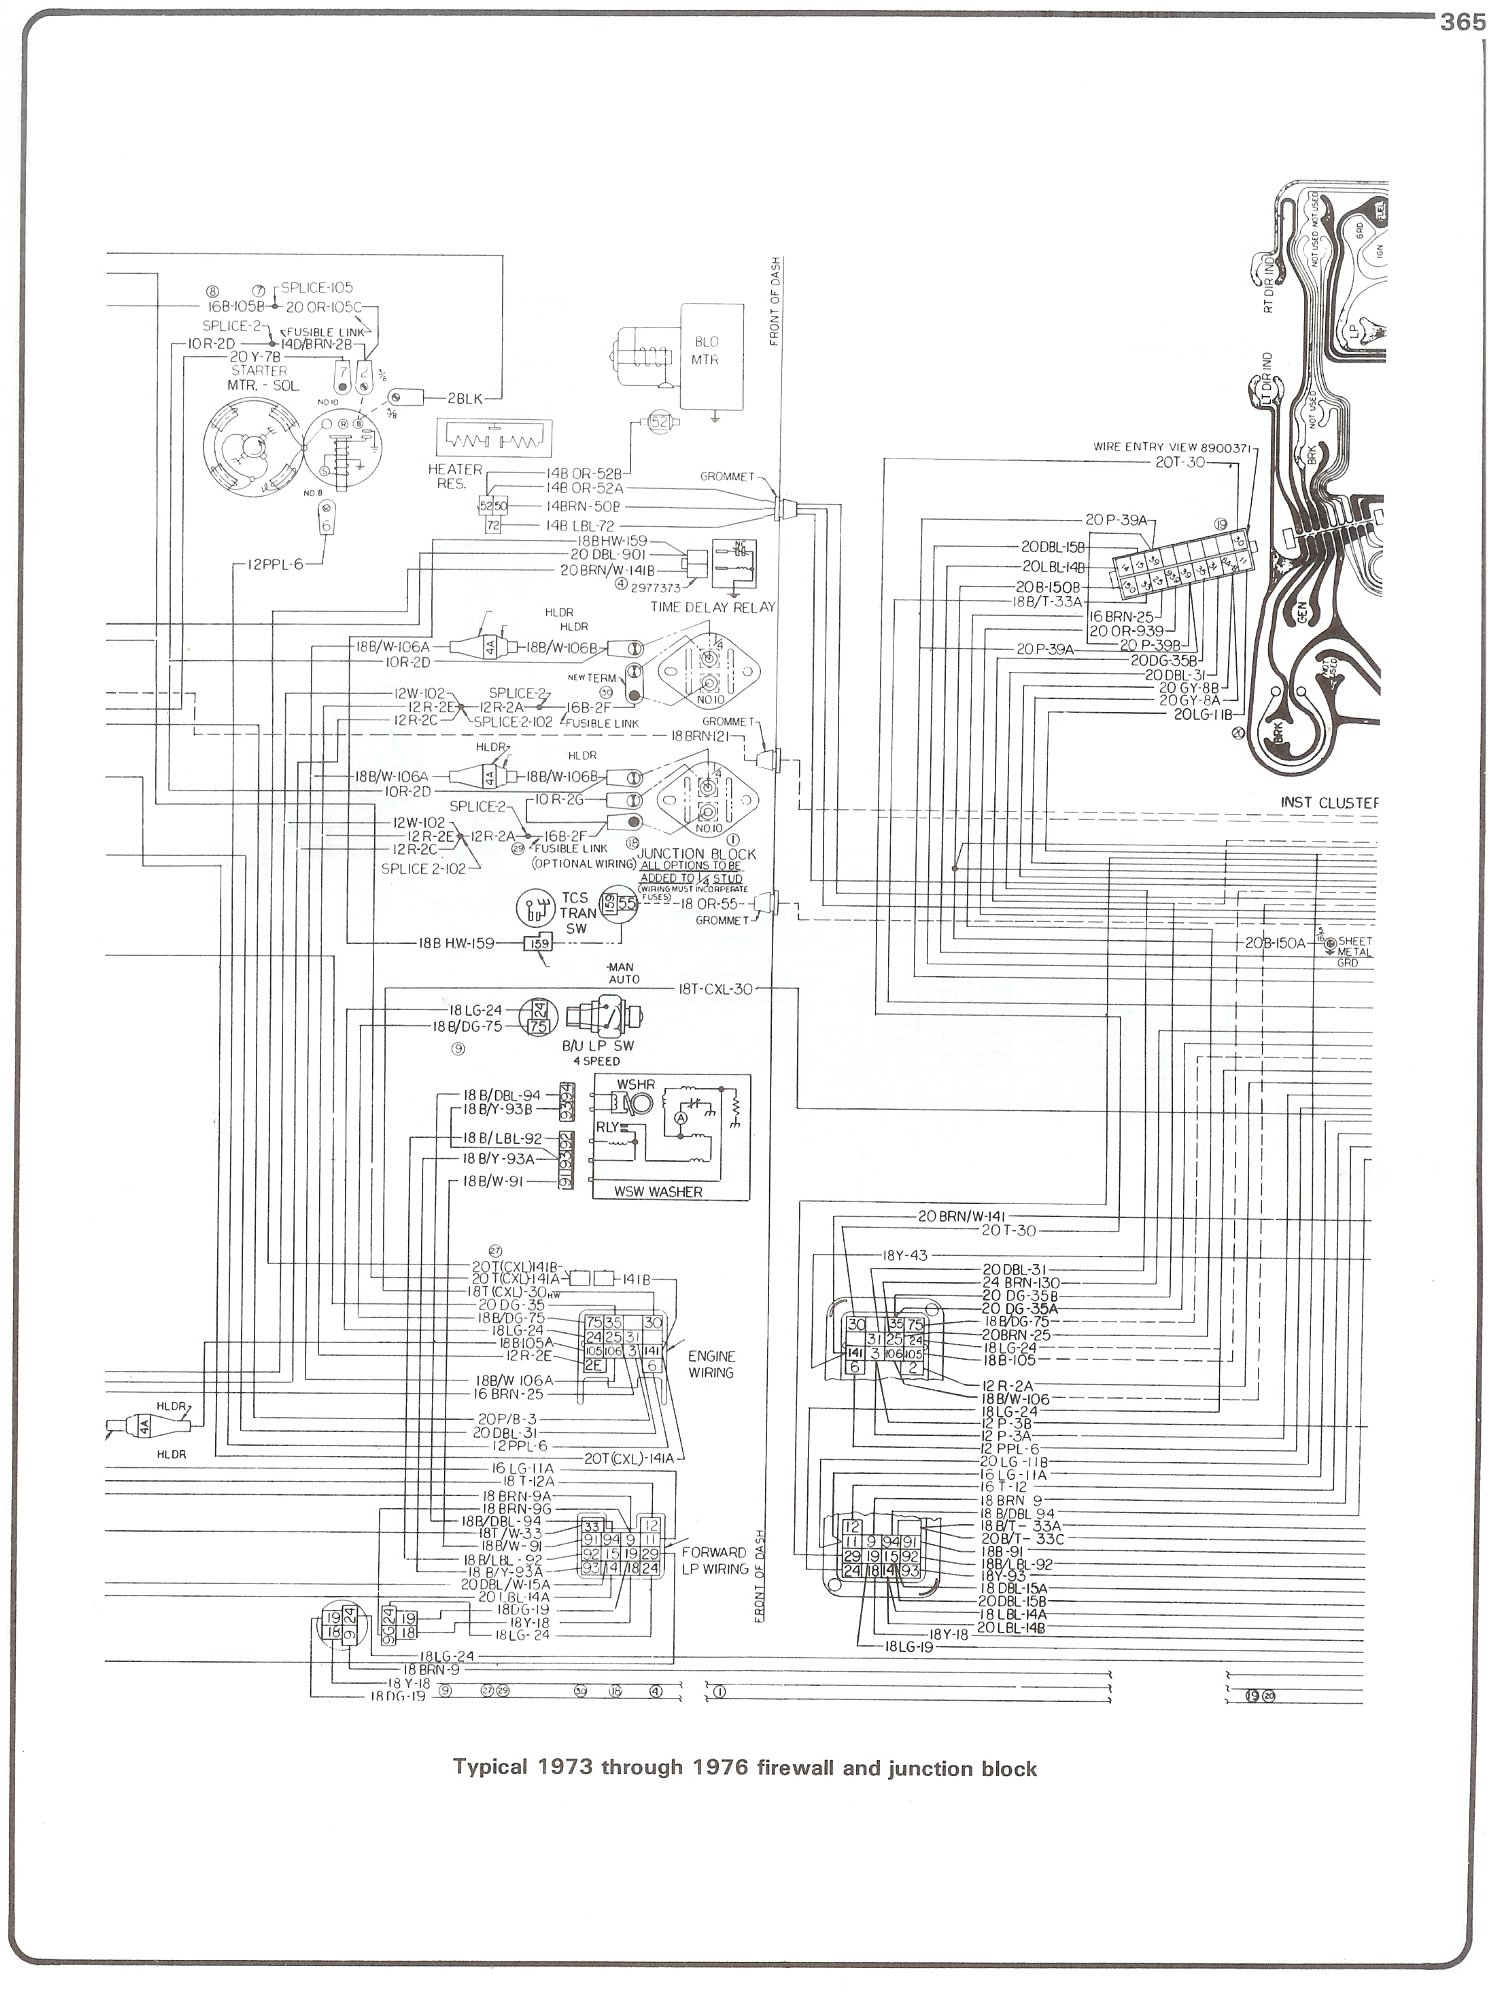 Mustang Wiring Diagram Blower Motor